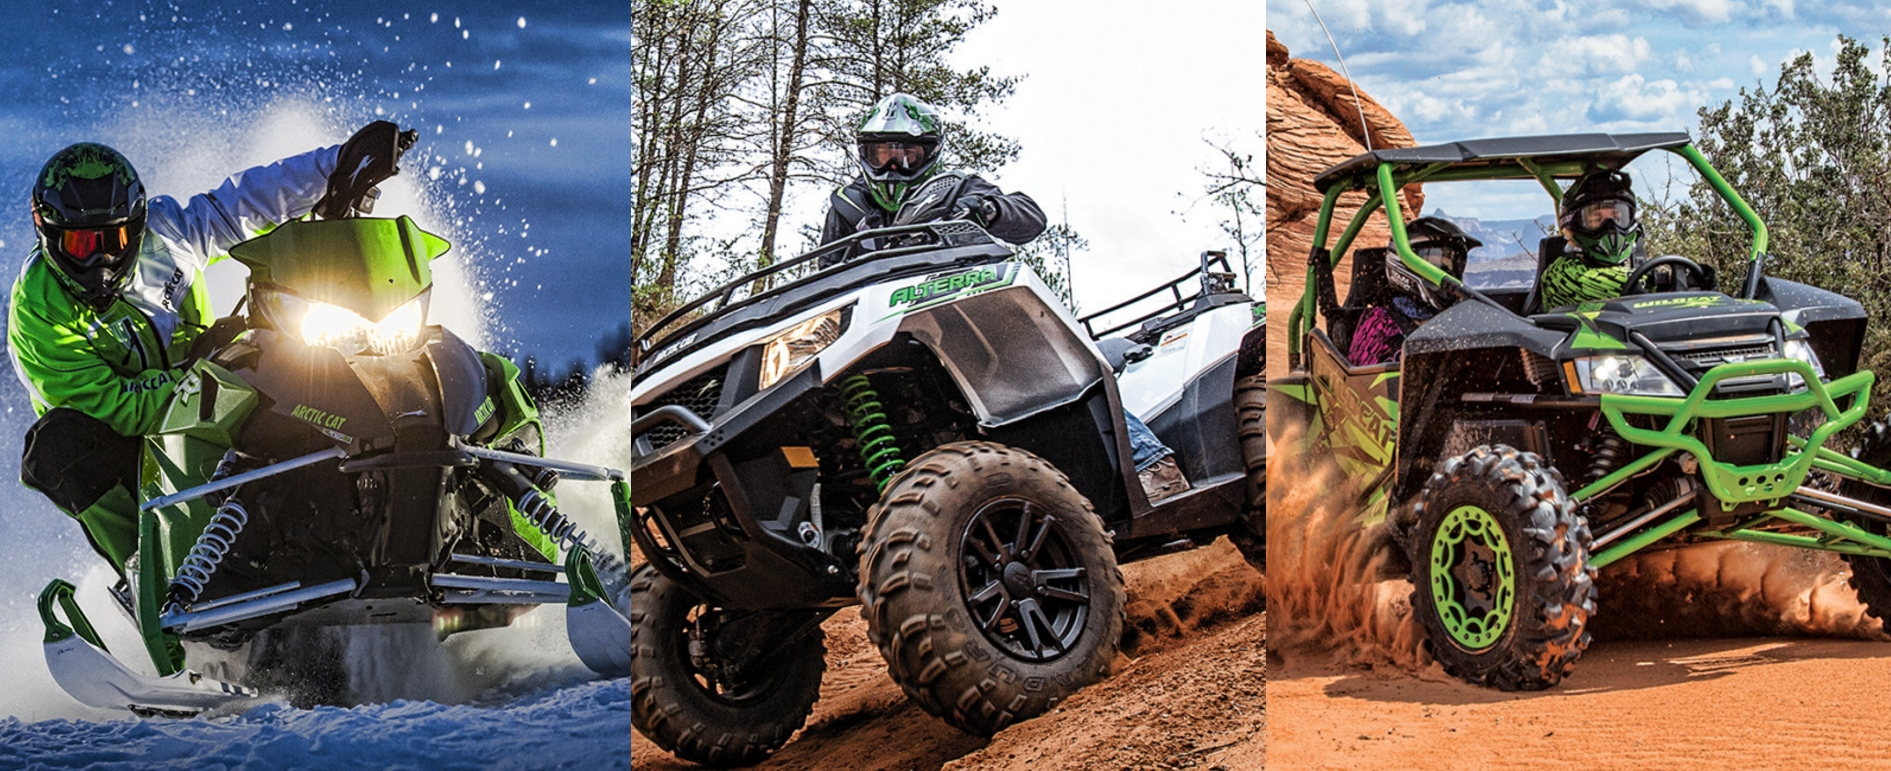 Arctic Cat Launches the 360 Wildcat VR Experience